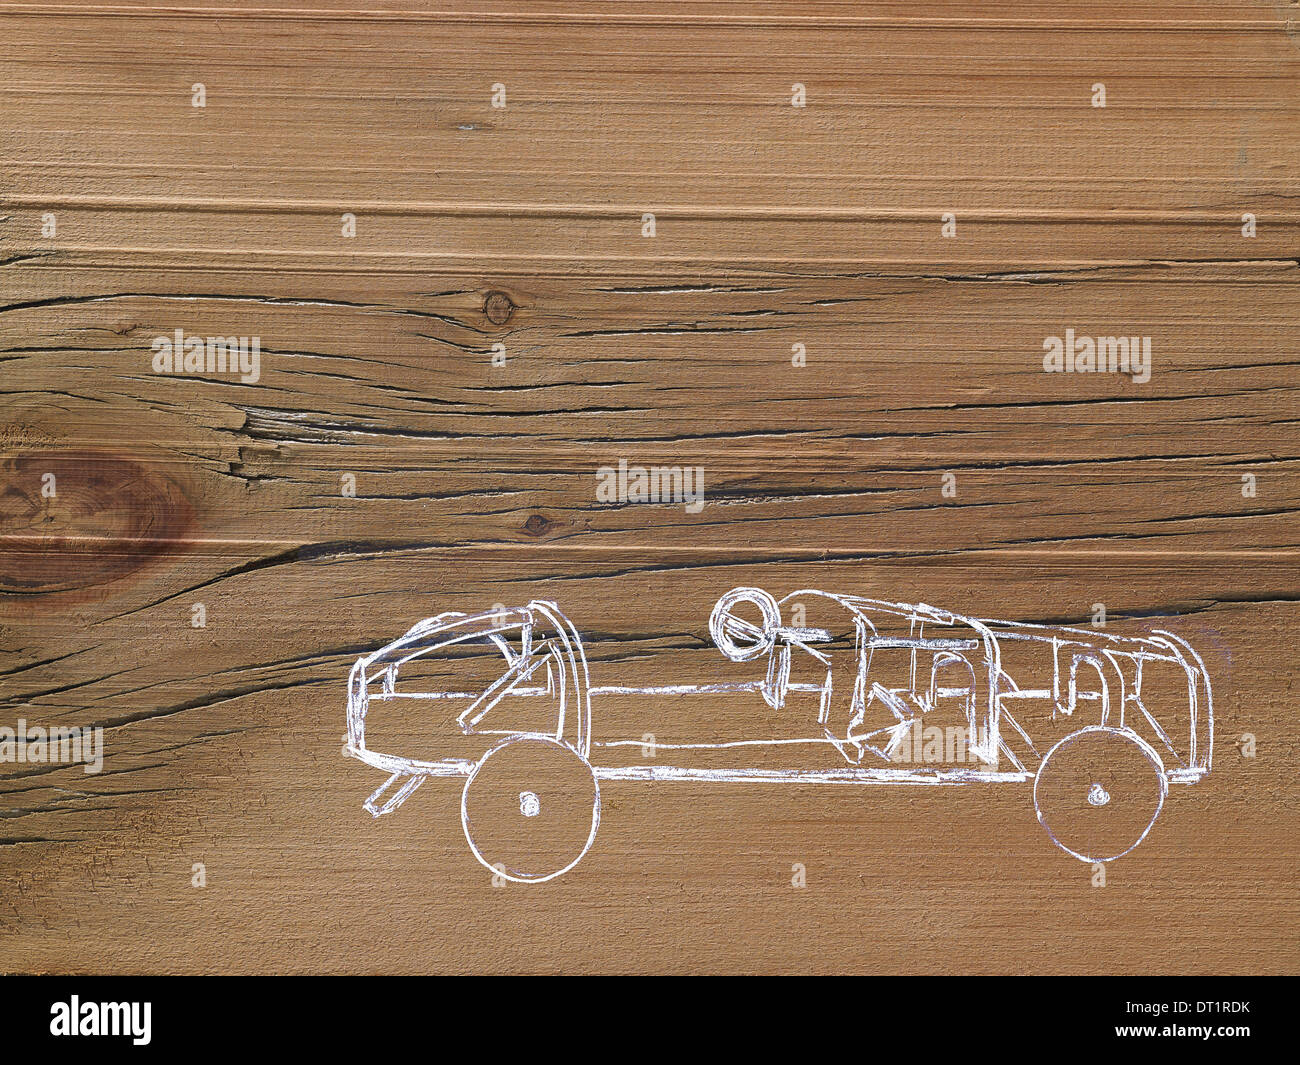 A line drawing image on a natural wood grain background Side profile of a low sporty open top car chassis - Stock Image